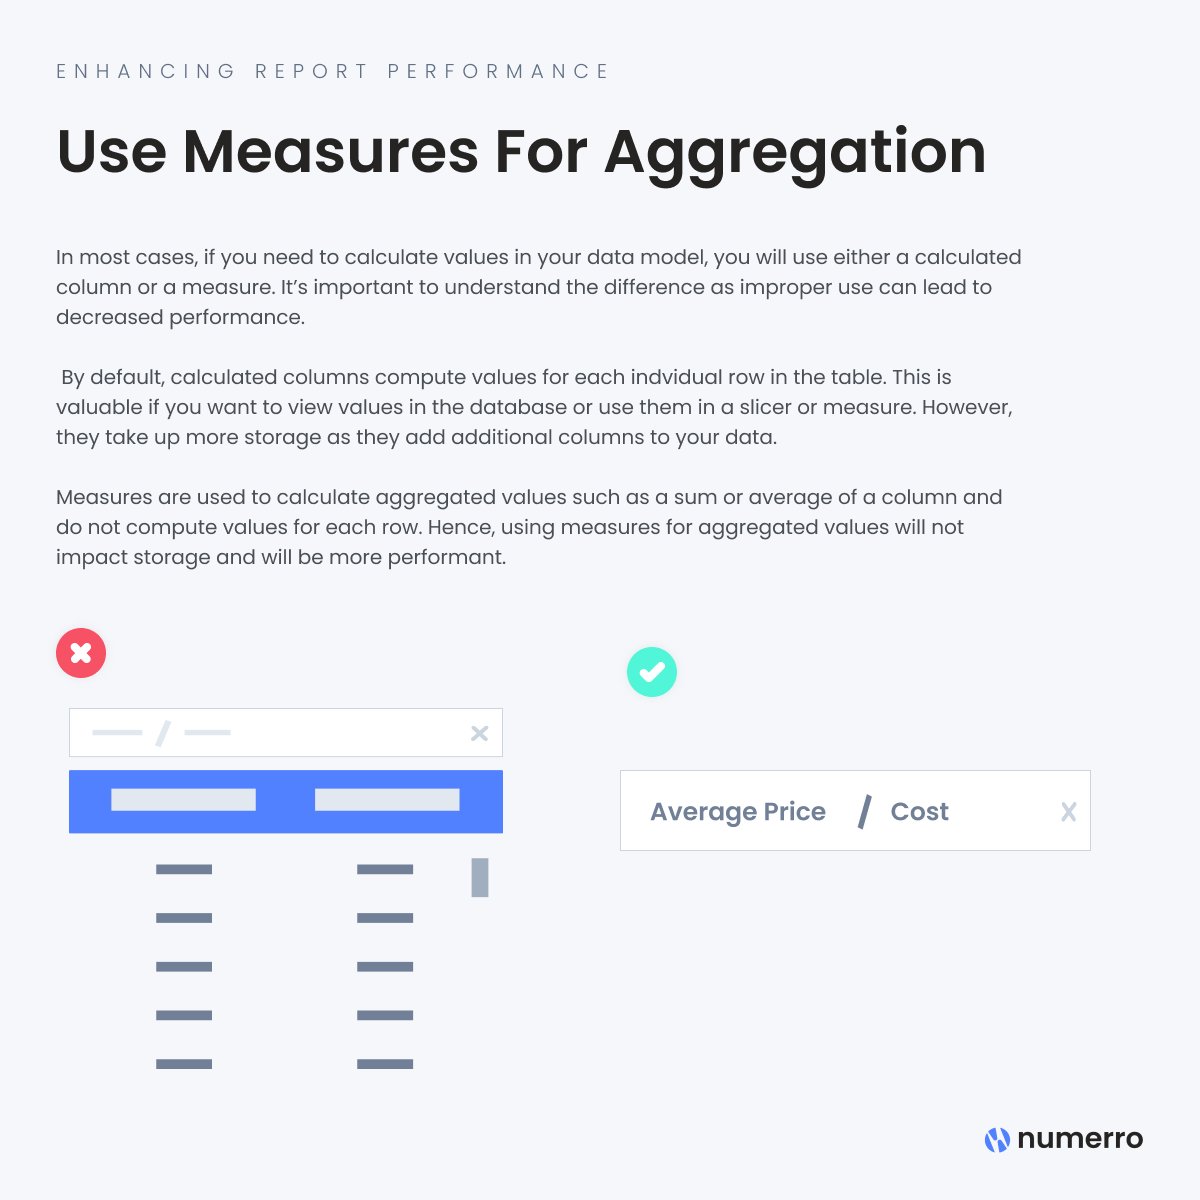 Enhancing Report Performance -Use Measures for Aggregation